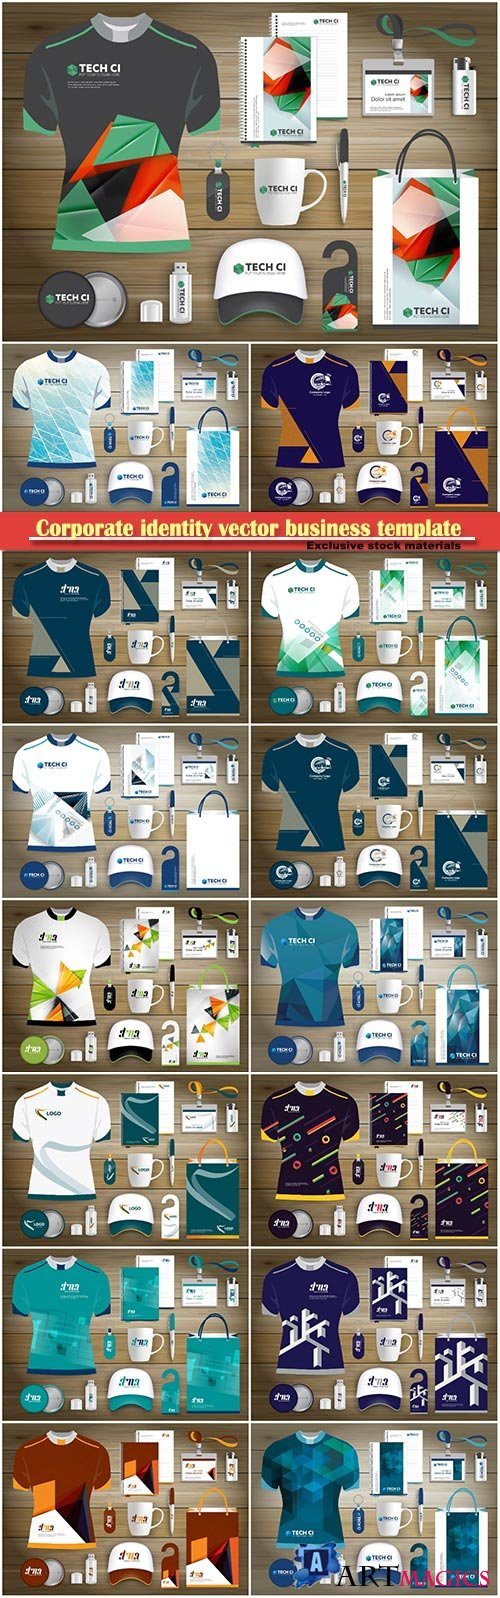 Corporate identity vector business template set